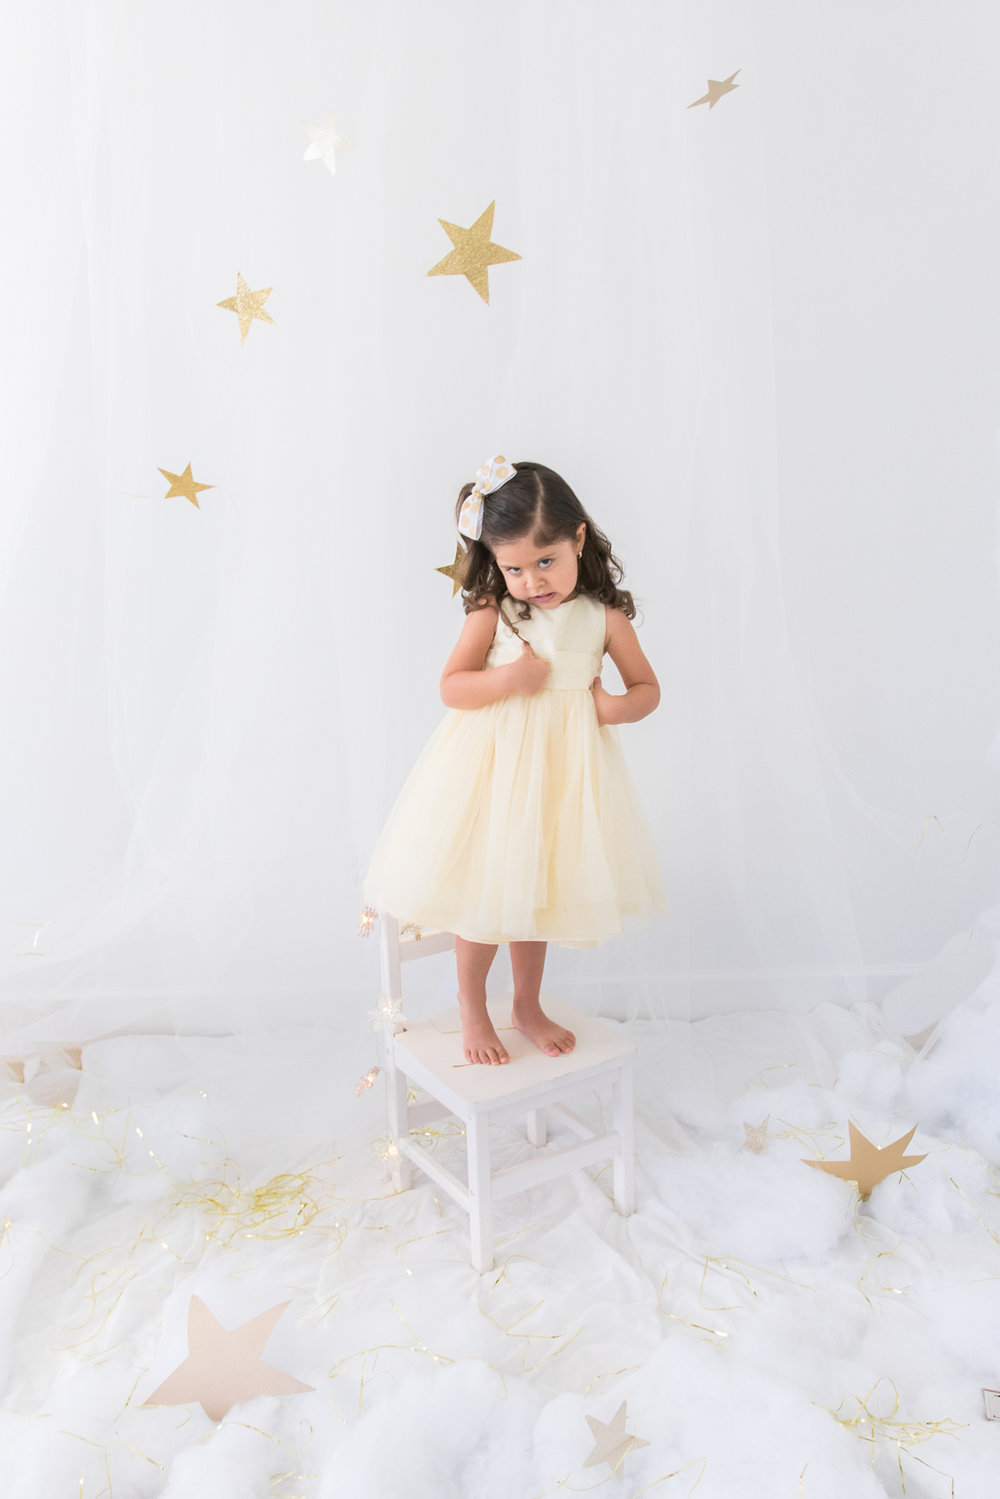 Twinkle-twinkle-little-star-session, Tampa-kids-photographer